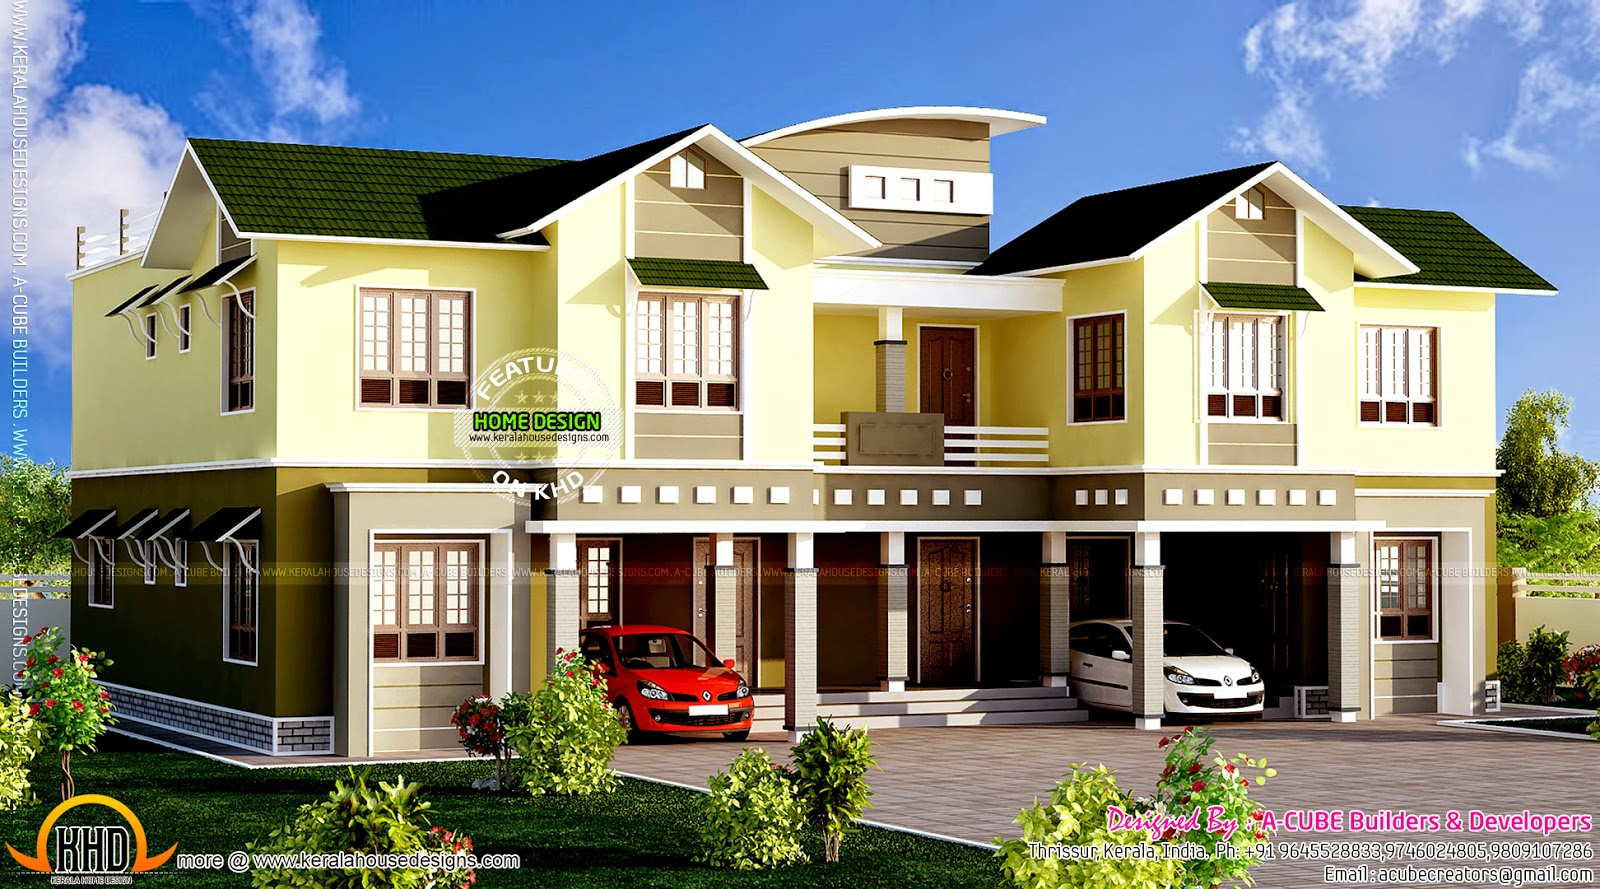 Luxury duplex home kerala home design and floor plans for Duplex home plan design